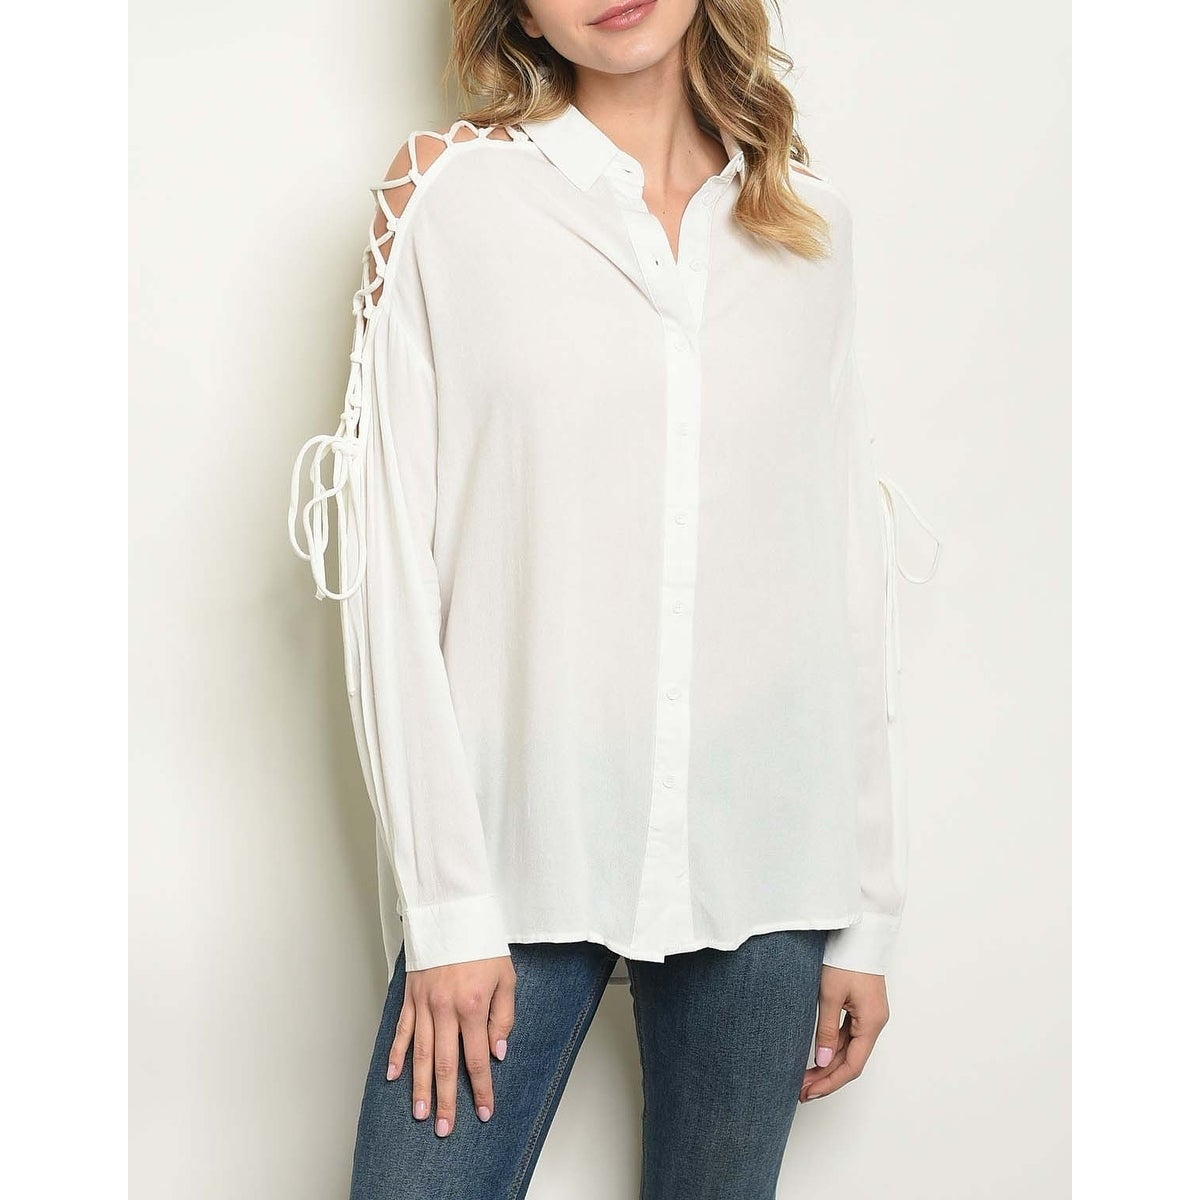 740c34c0f Shop JED Women's Lace-Up Sleeve Button Down Shirt - Free Shipping On ...